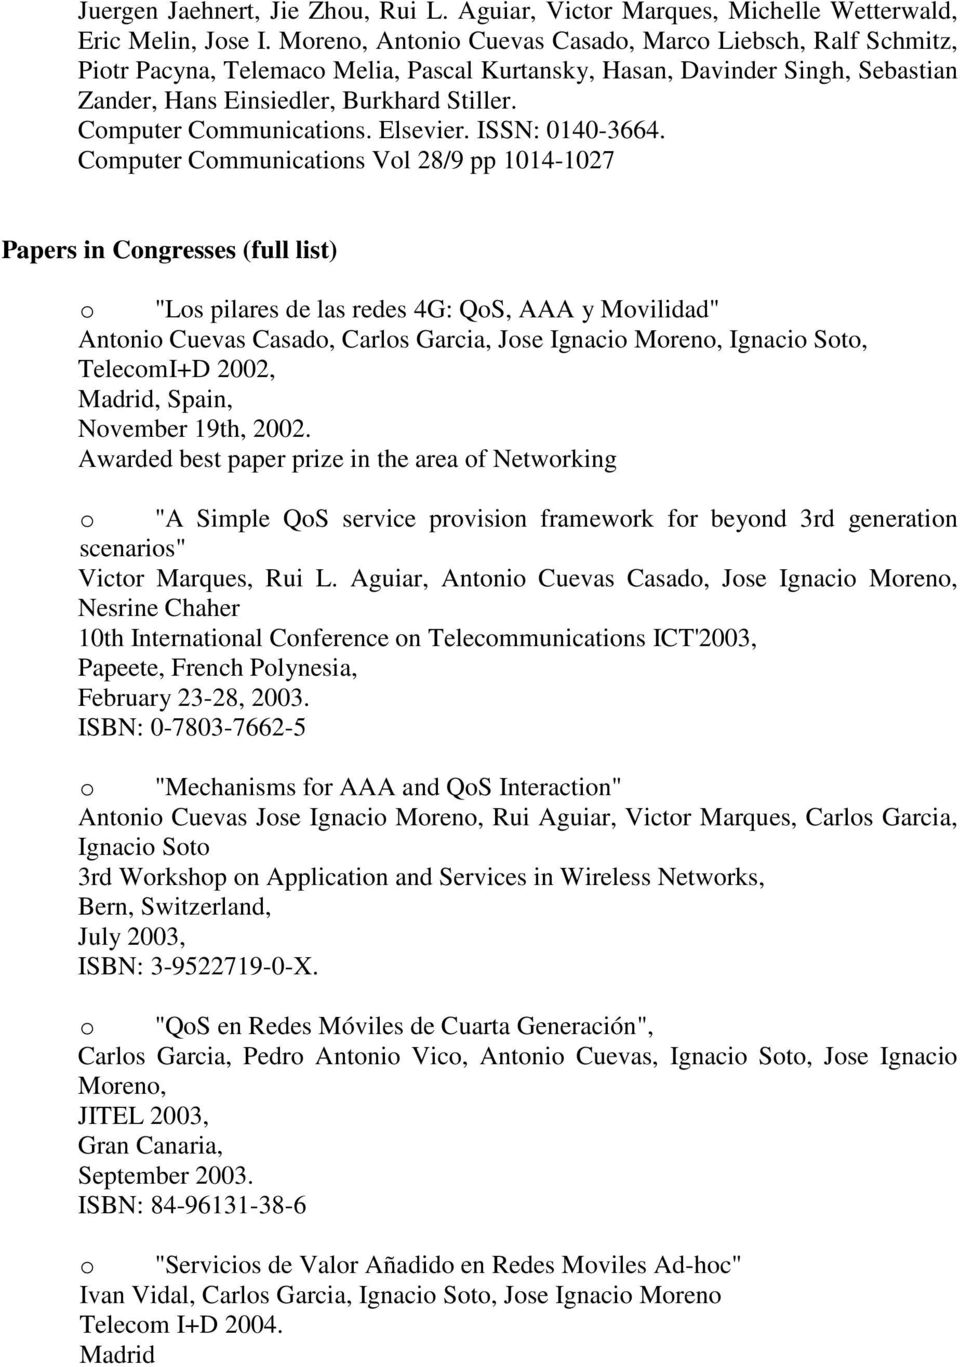 Computer Communications. Elsevier. ISSN: 0140-3664.